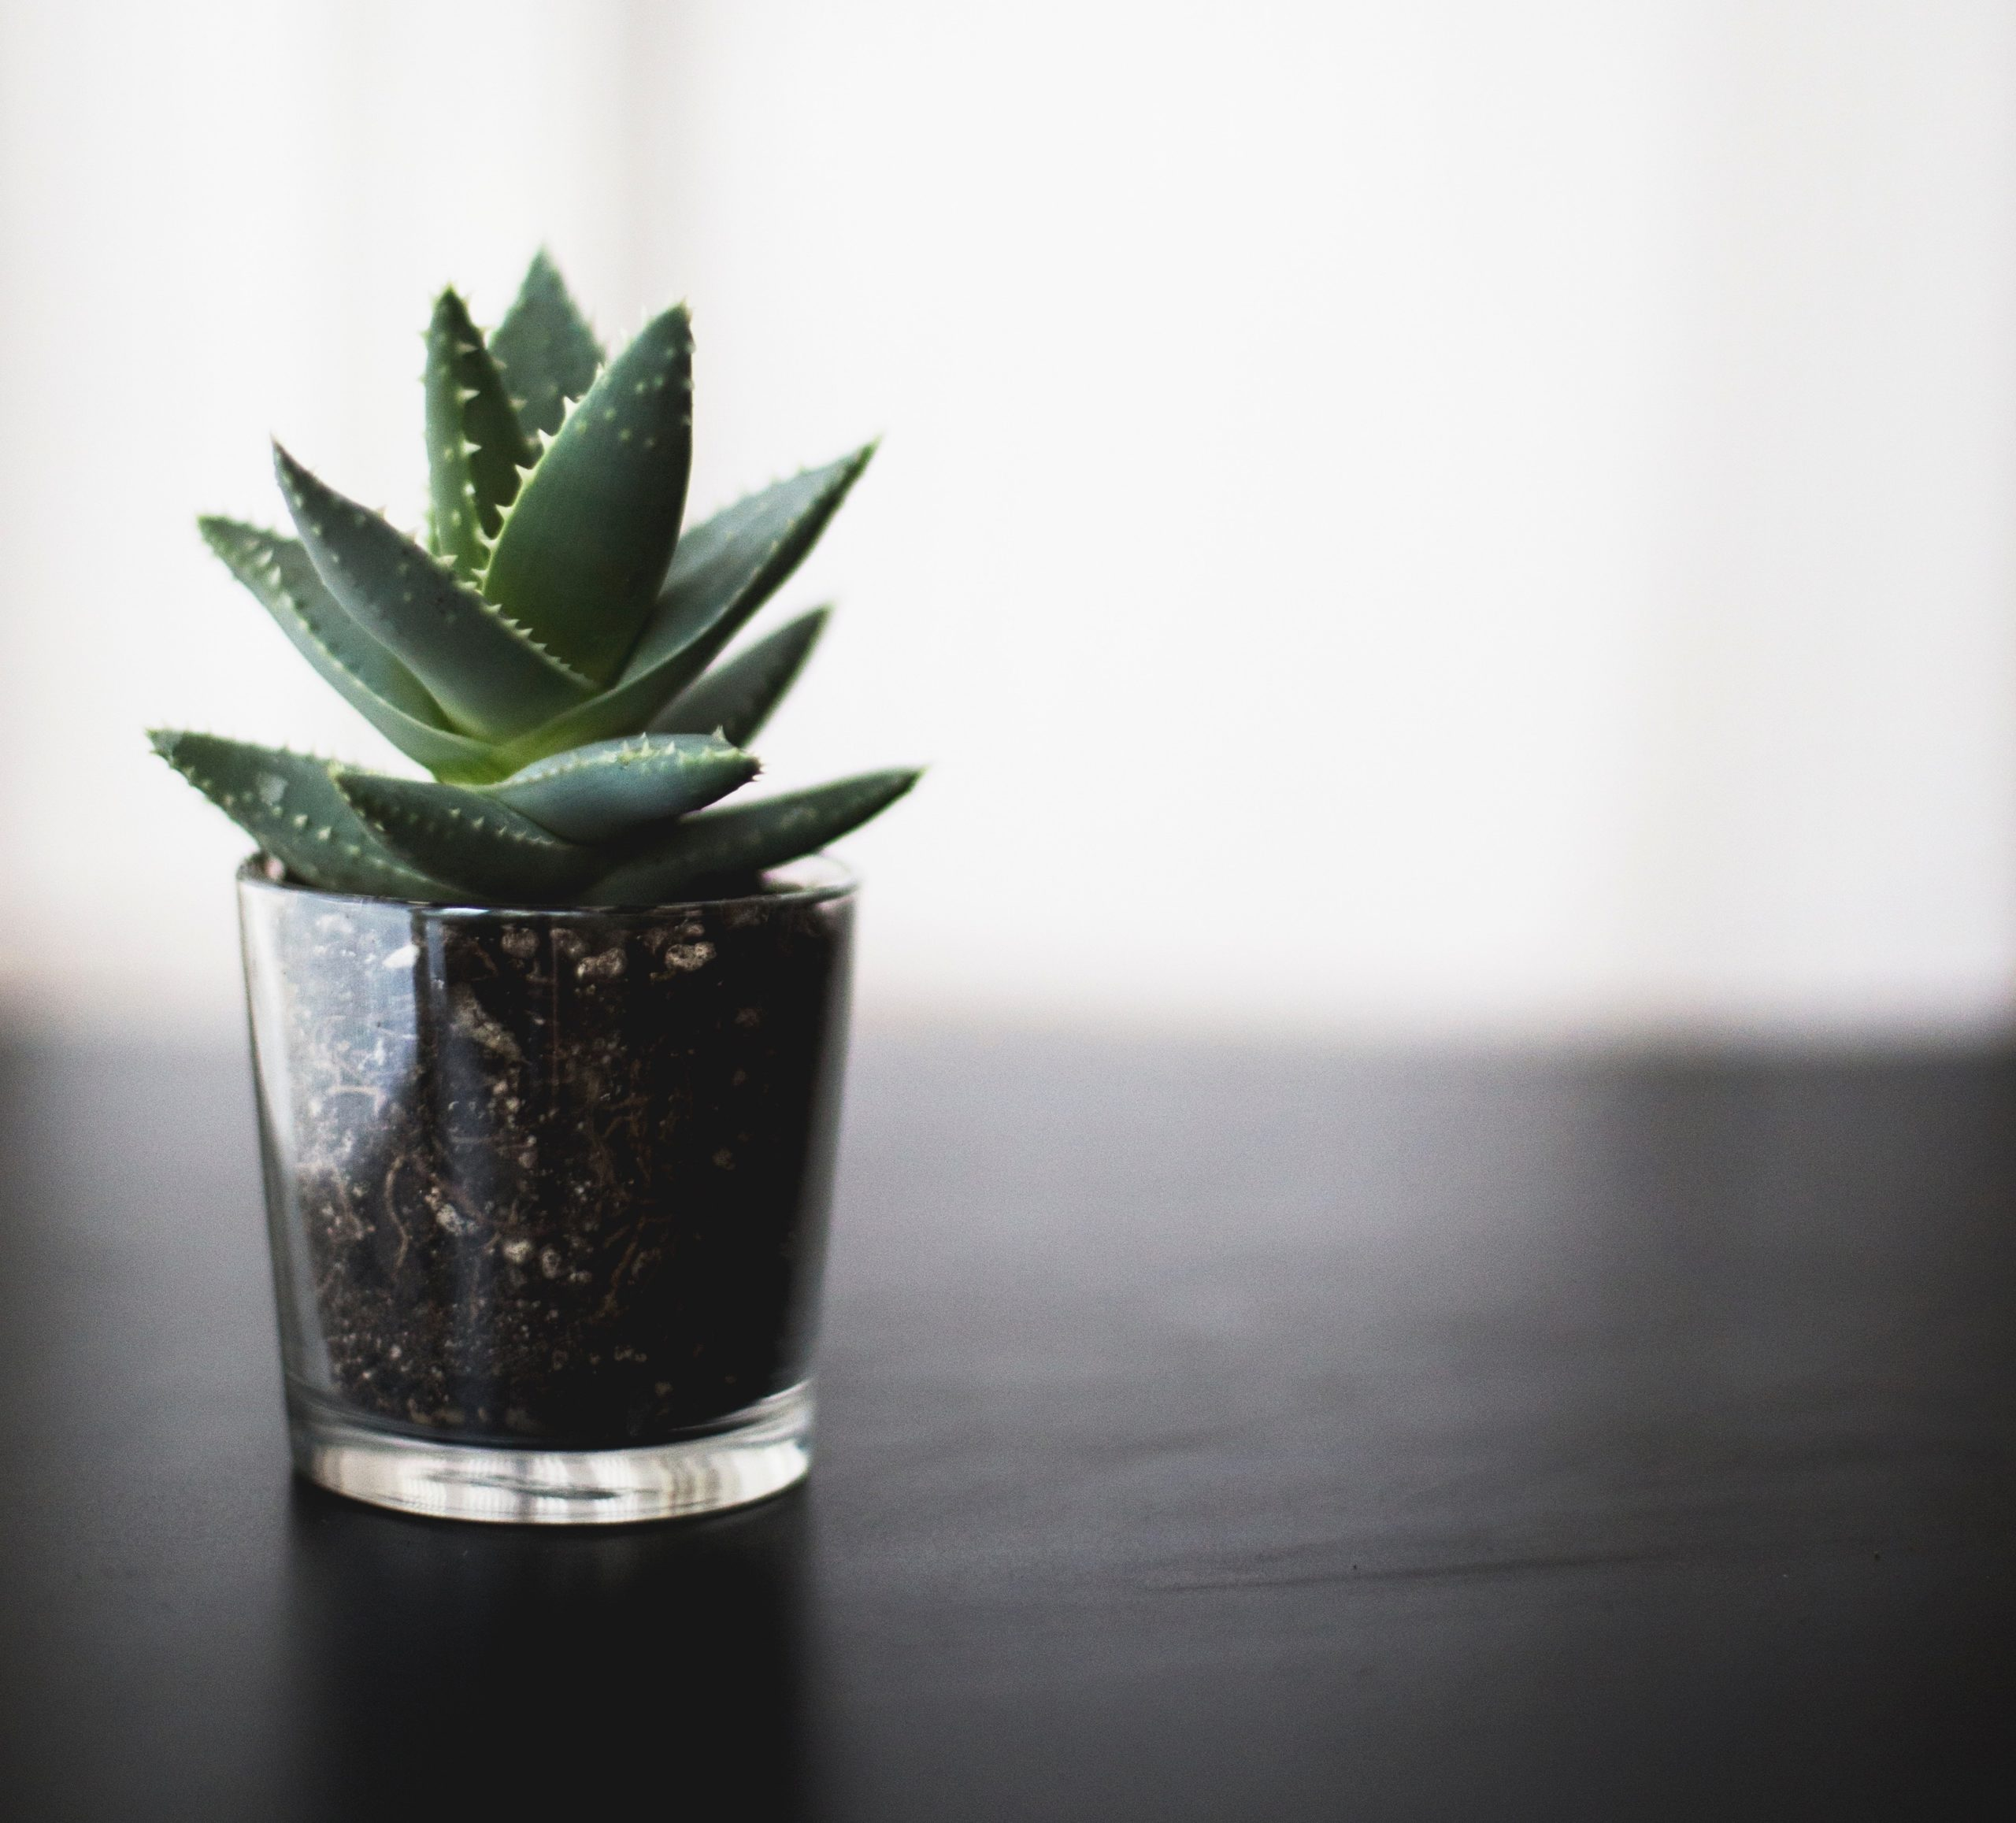 A tall & narrow green succulent potted in dark brown soil and a clear glass pot sitting on a neutral black tabletop with a white background.